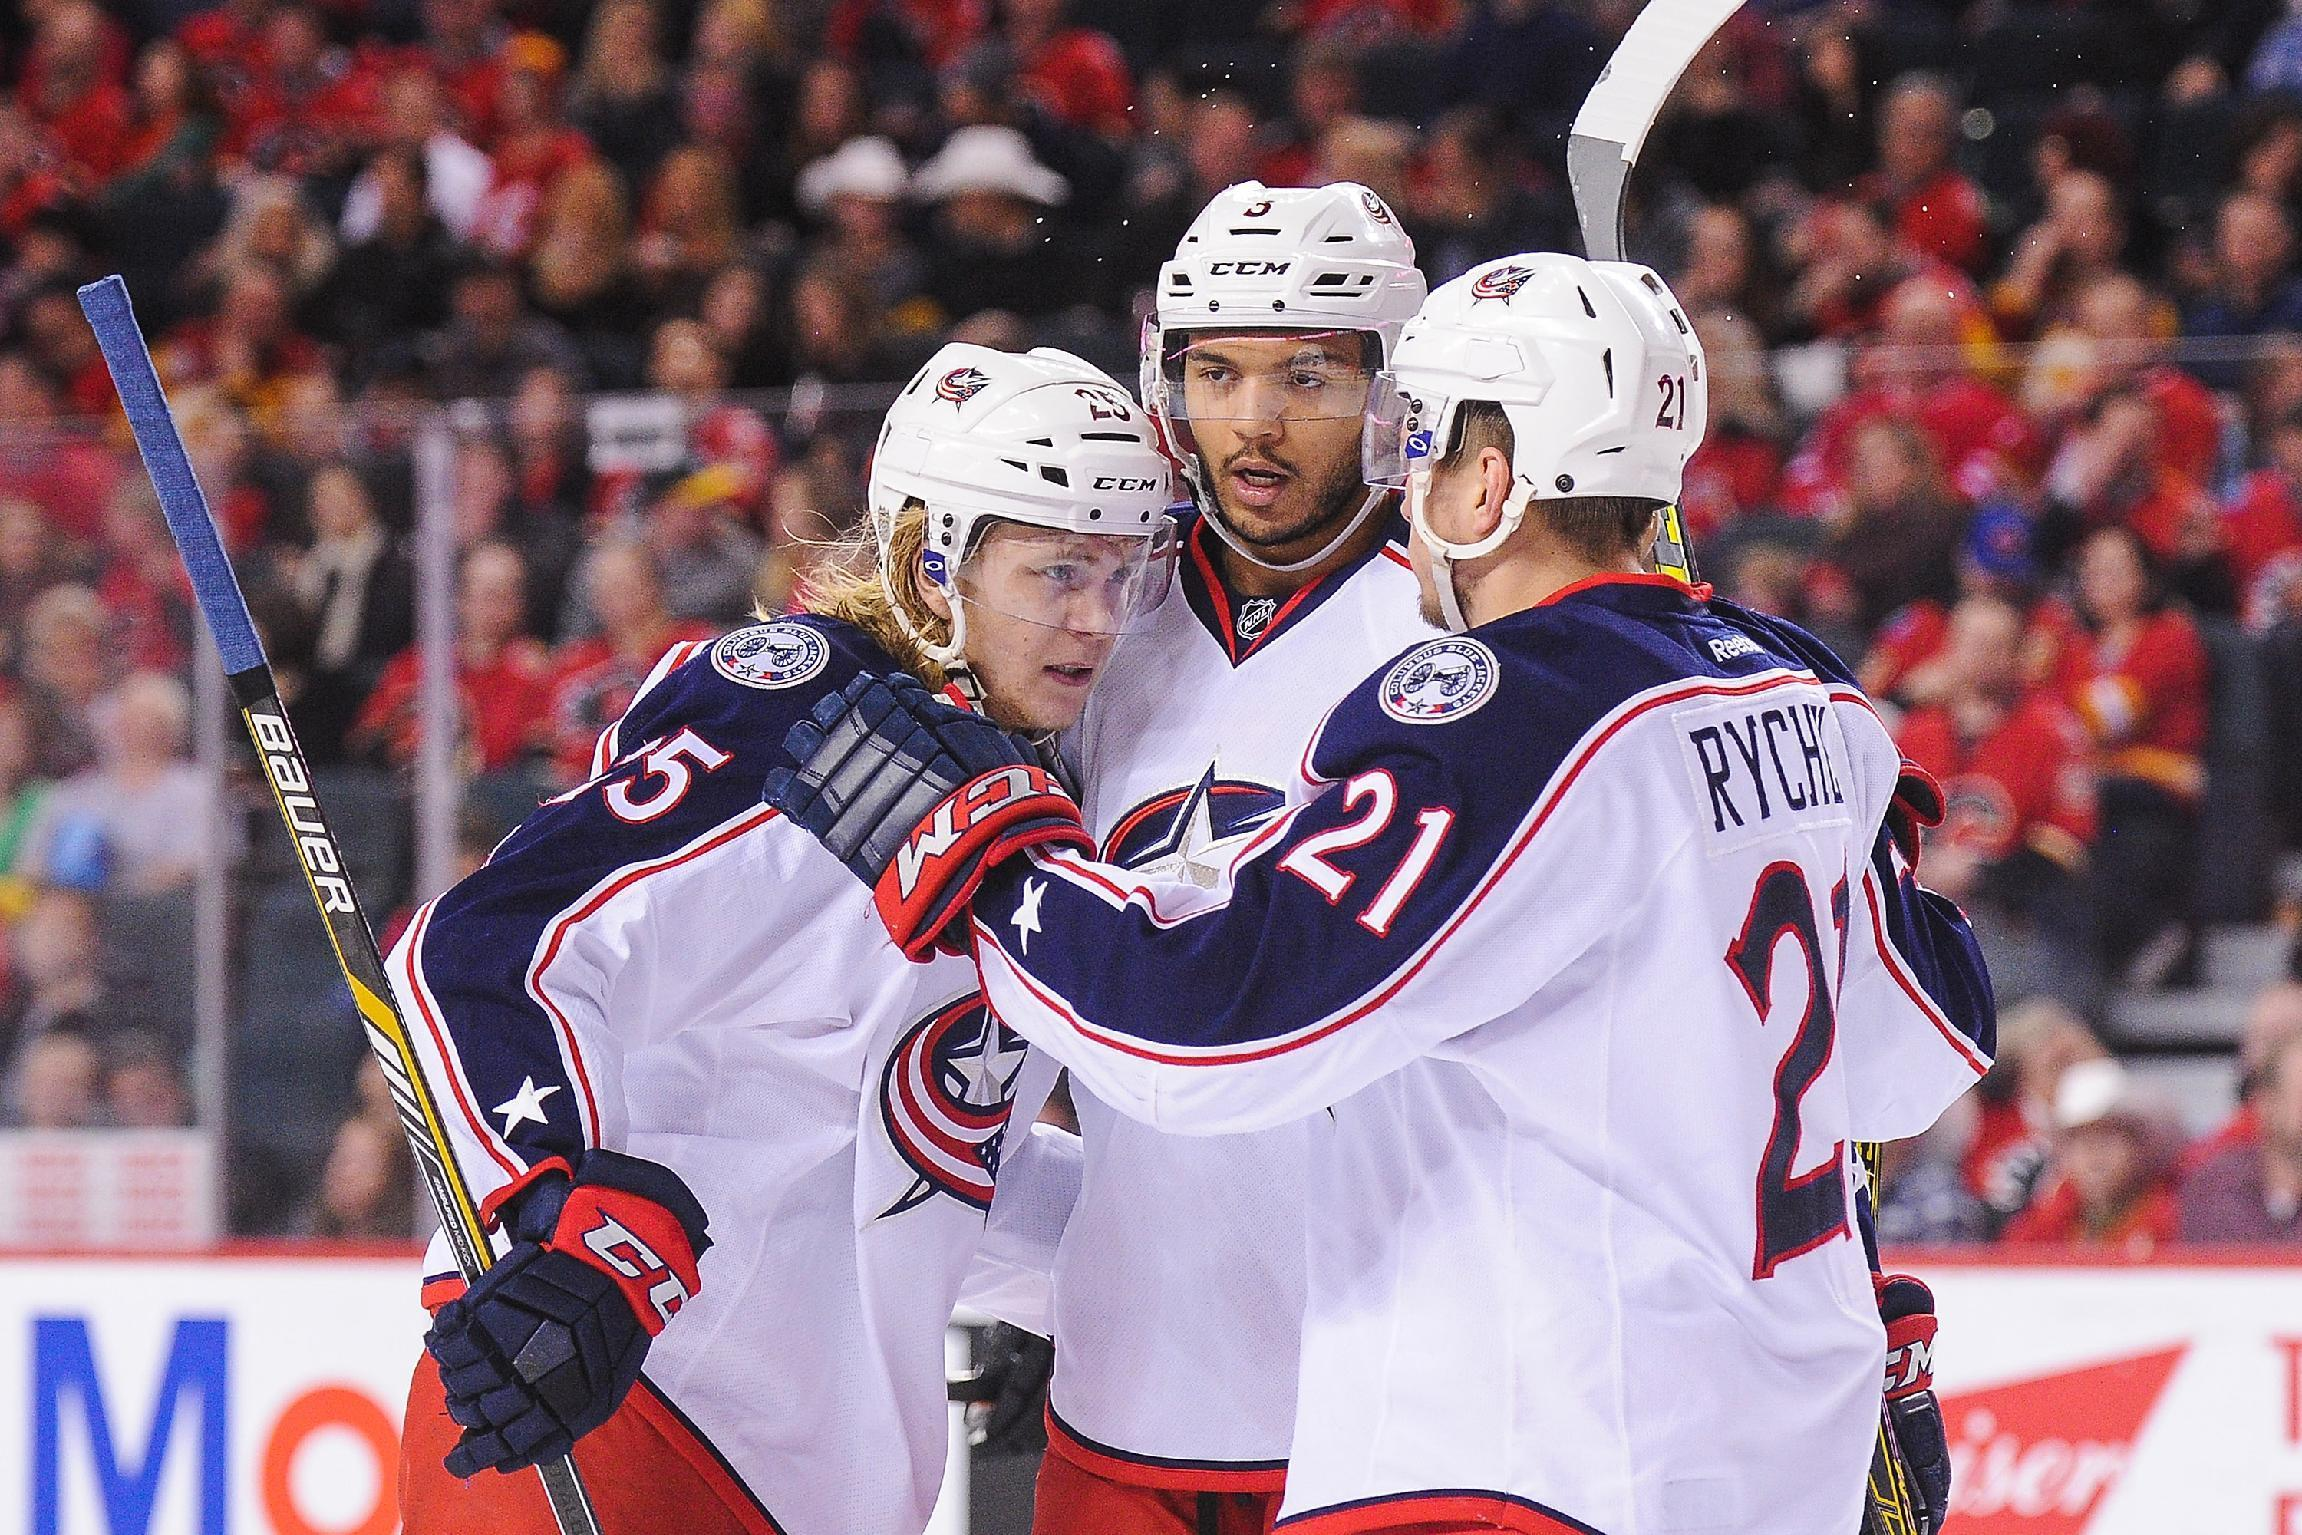 NHL Three Stars: Karlsson leads Blue Jackets; Lightning keep rolling